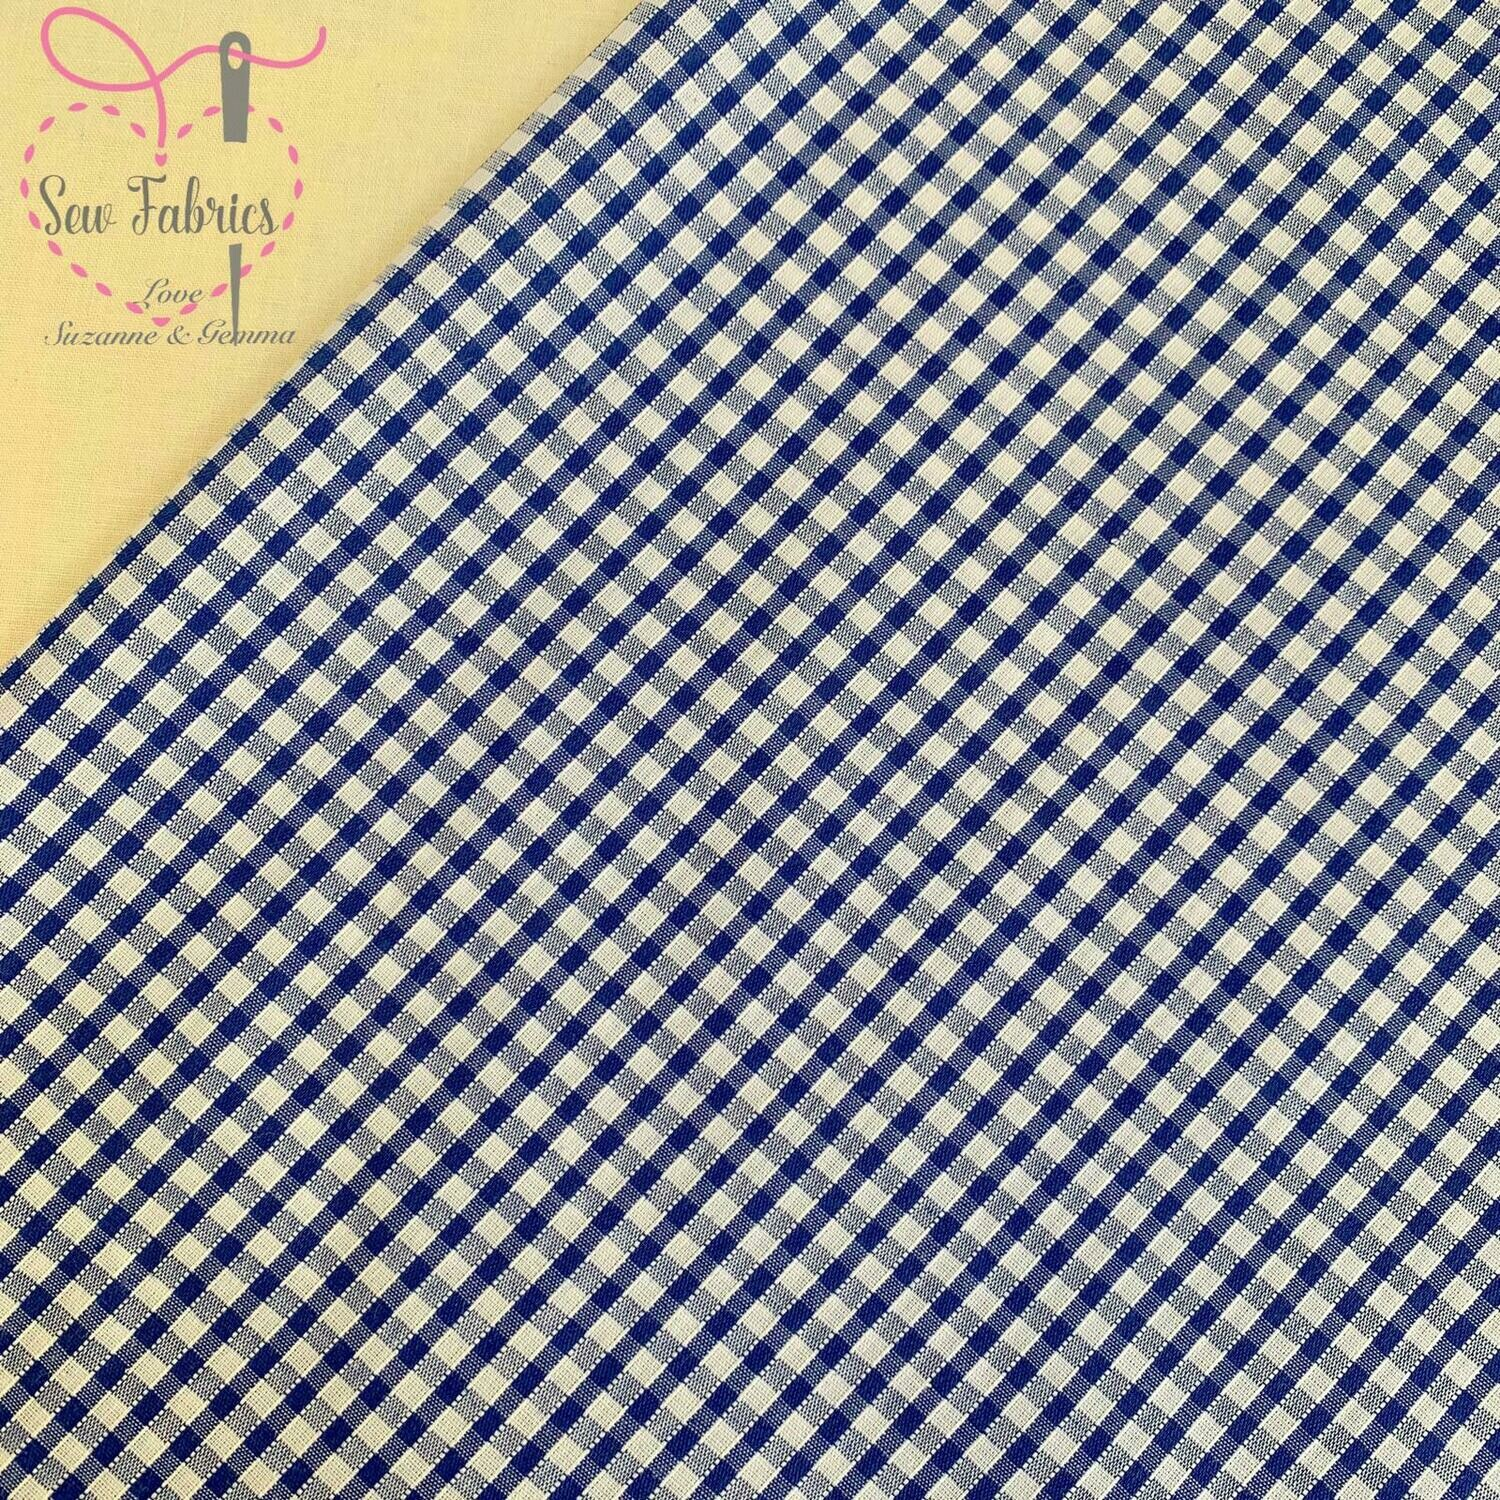 Classic Royal Blue Gingham Print Polycotton Fabric  School Colour Material For Craft & Sewing Projects